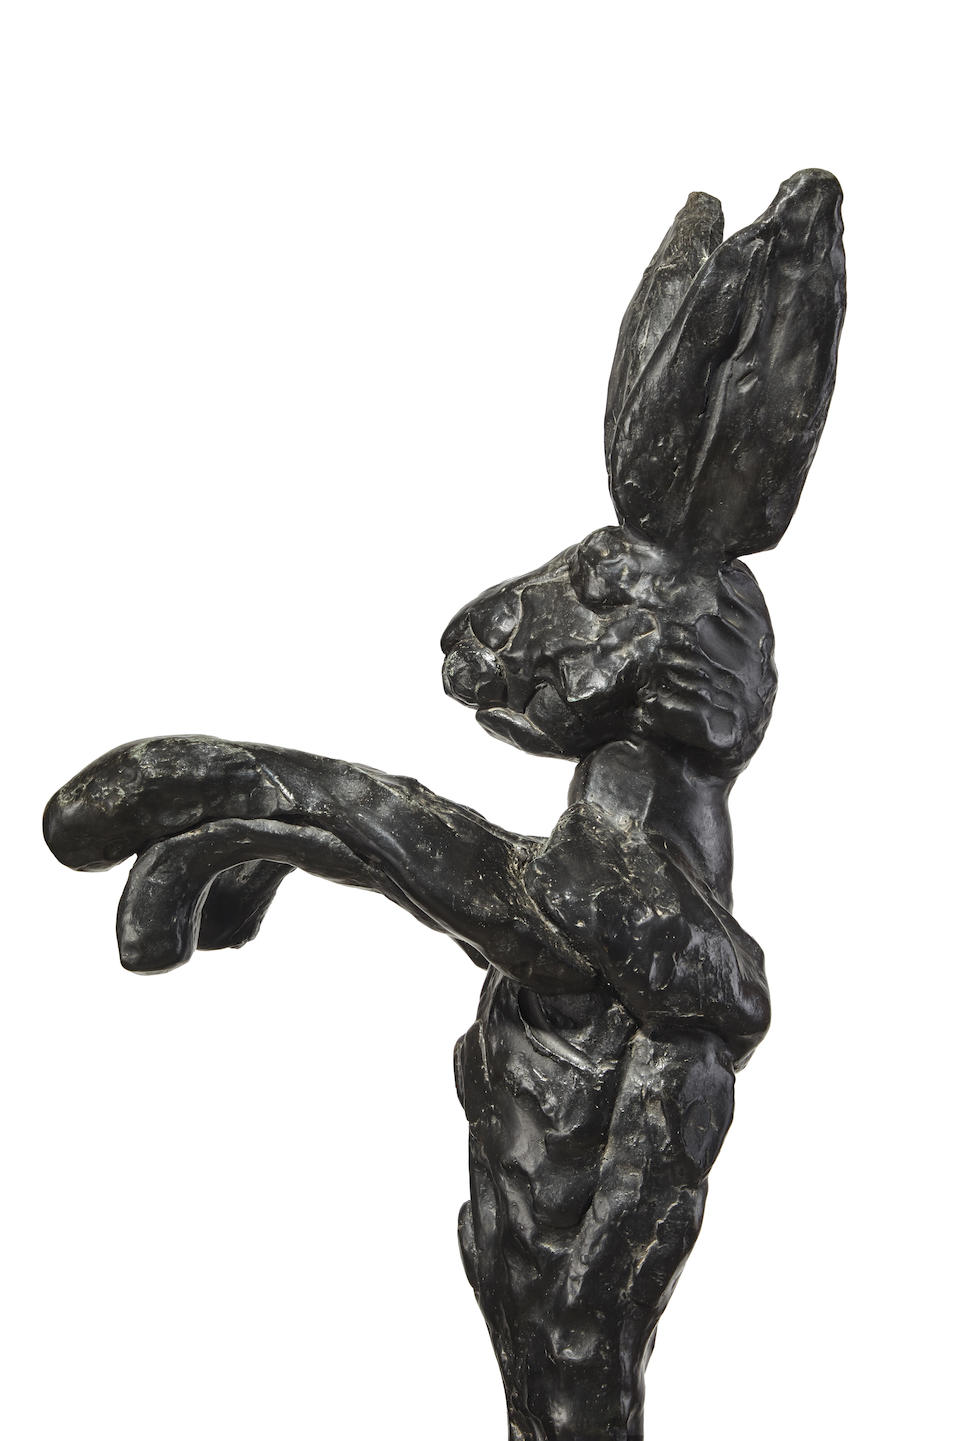 Barry Flanagan (British, 1941-2009) Large Boxing Hare on Anvil 1984